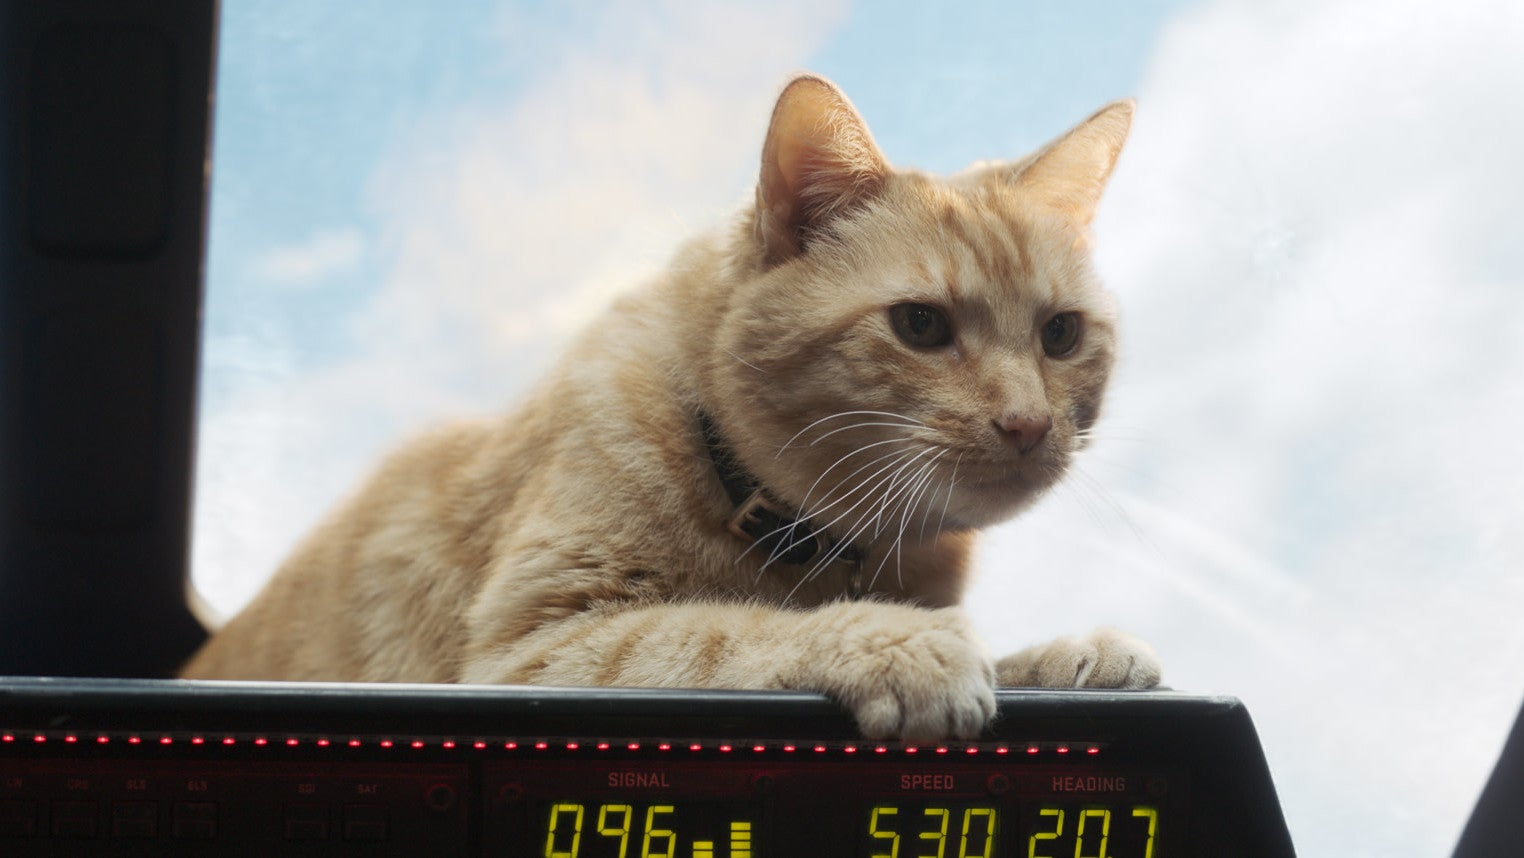 captain-marvel cats goose io9 marvel marvel-cinematic-universe marvel-studios post-credits-scenes video